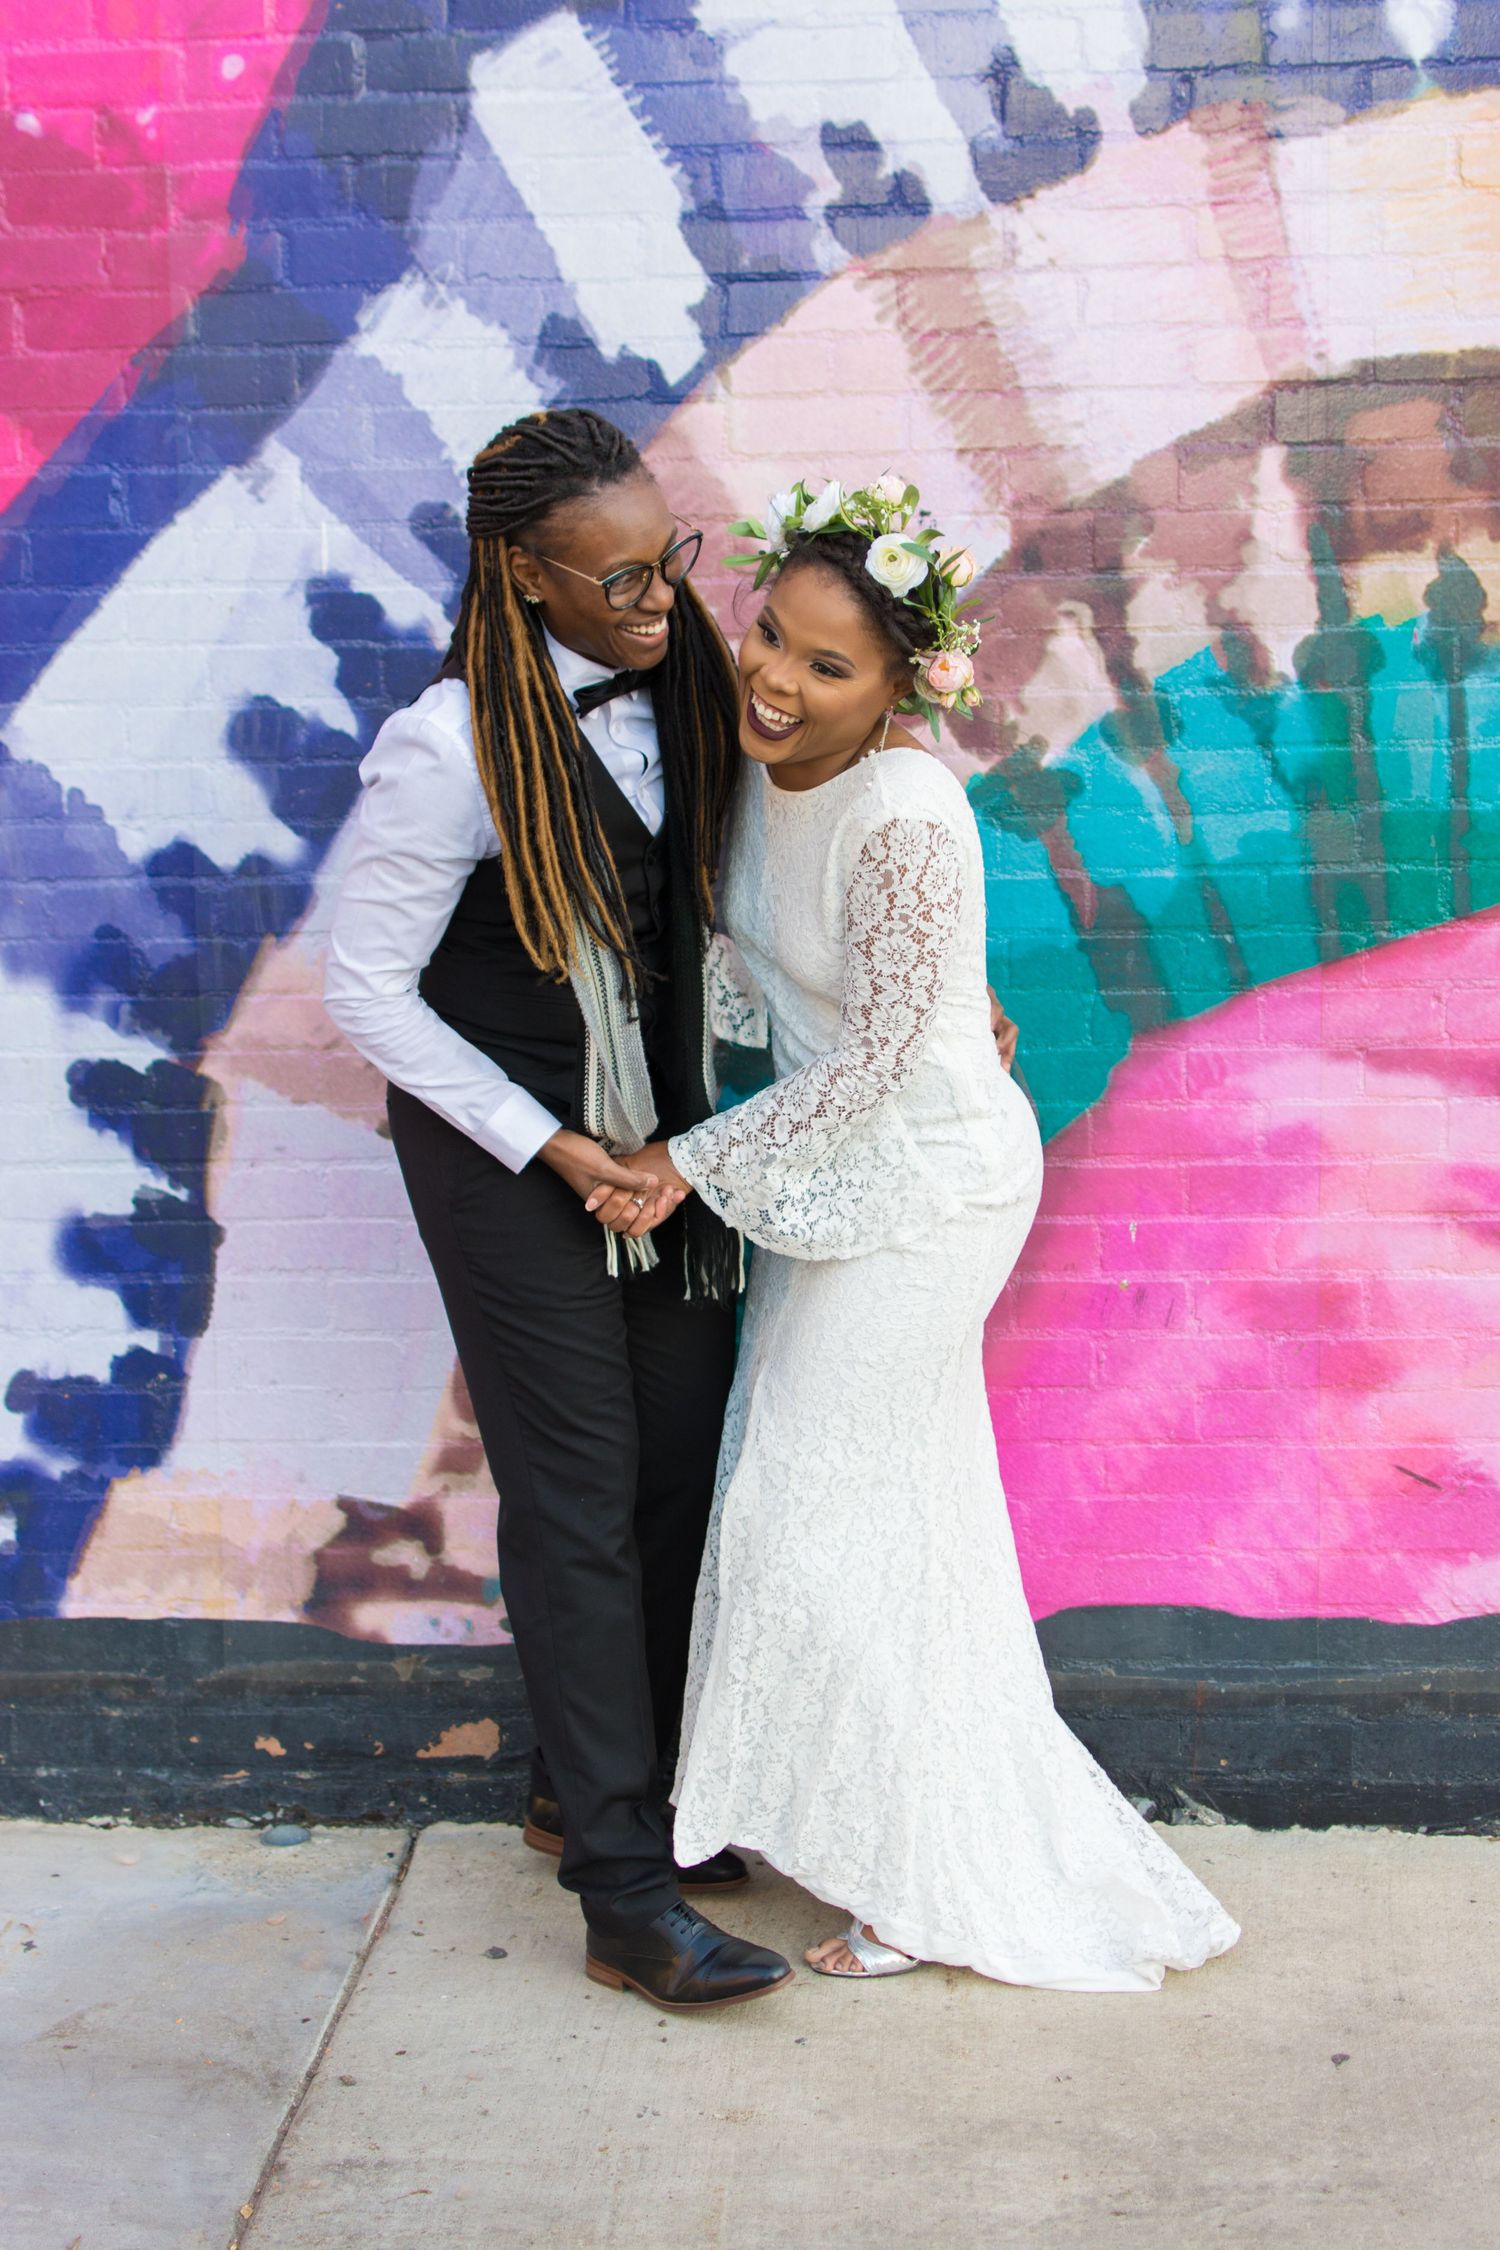 Elopements are becoming more popular among African American couples. Photo by Gernelle Nelson